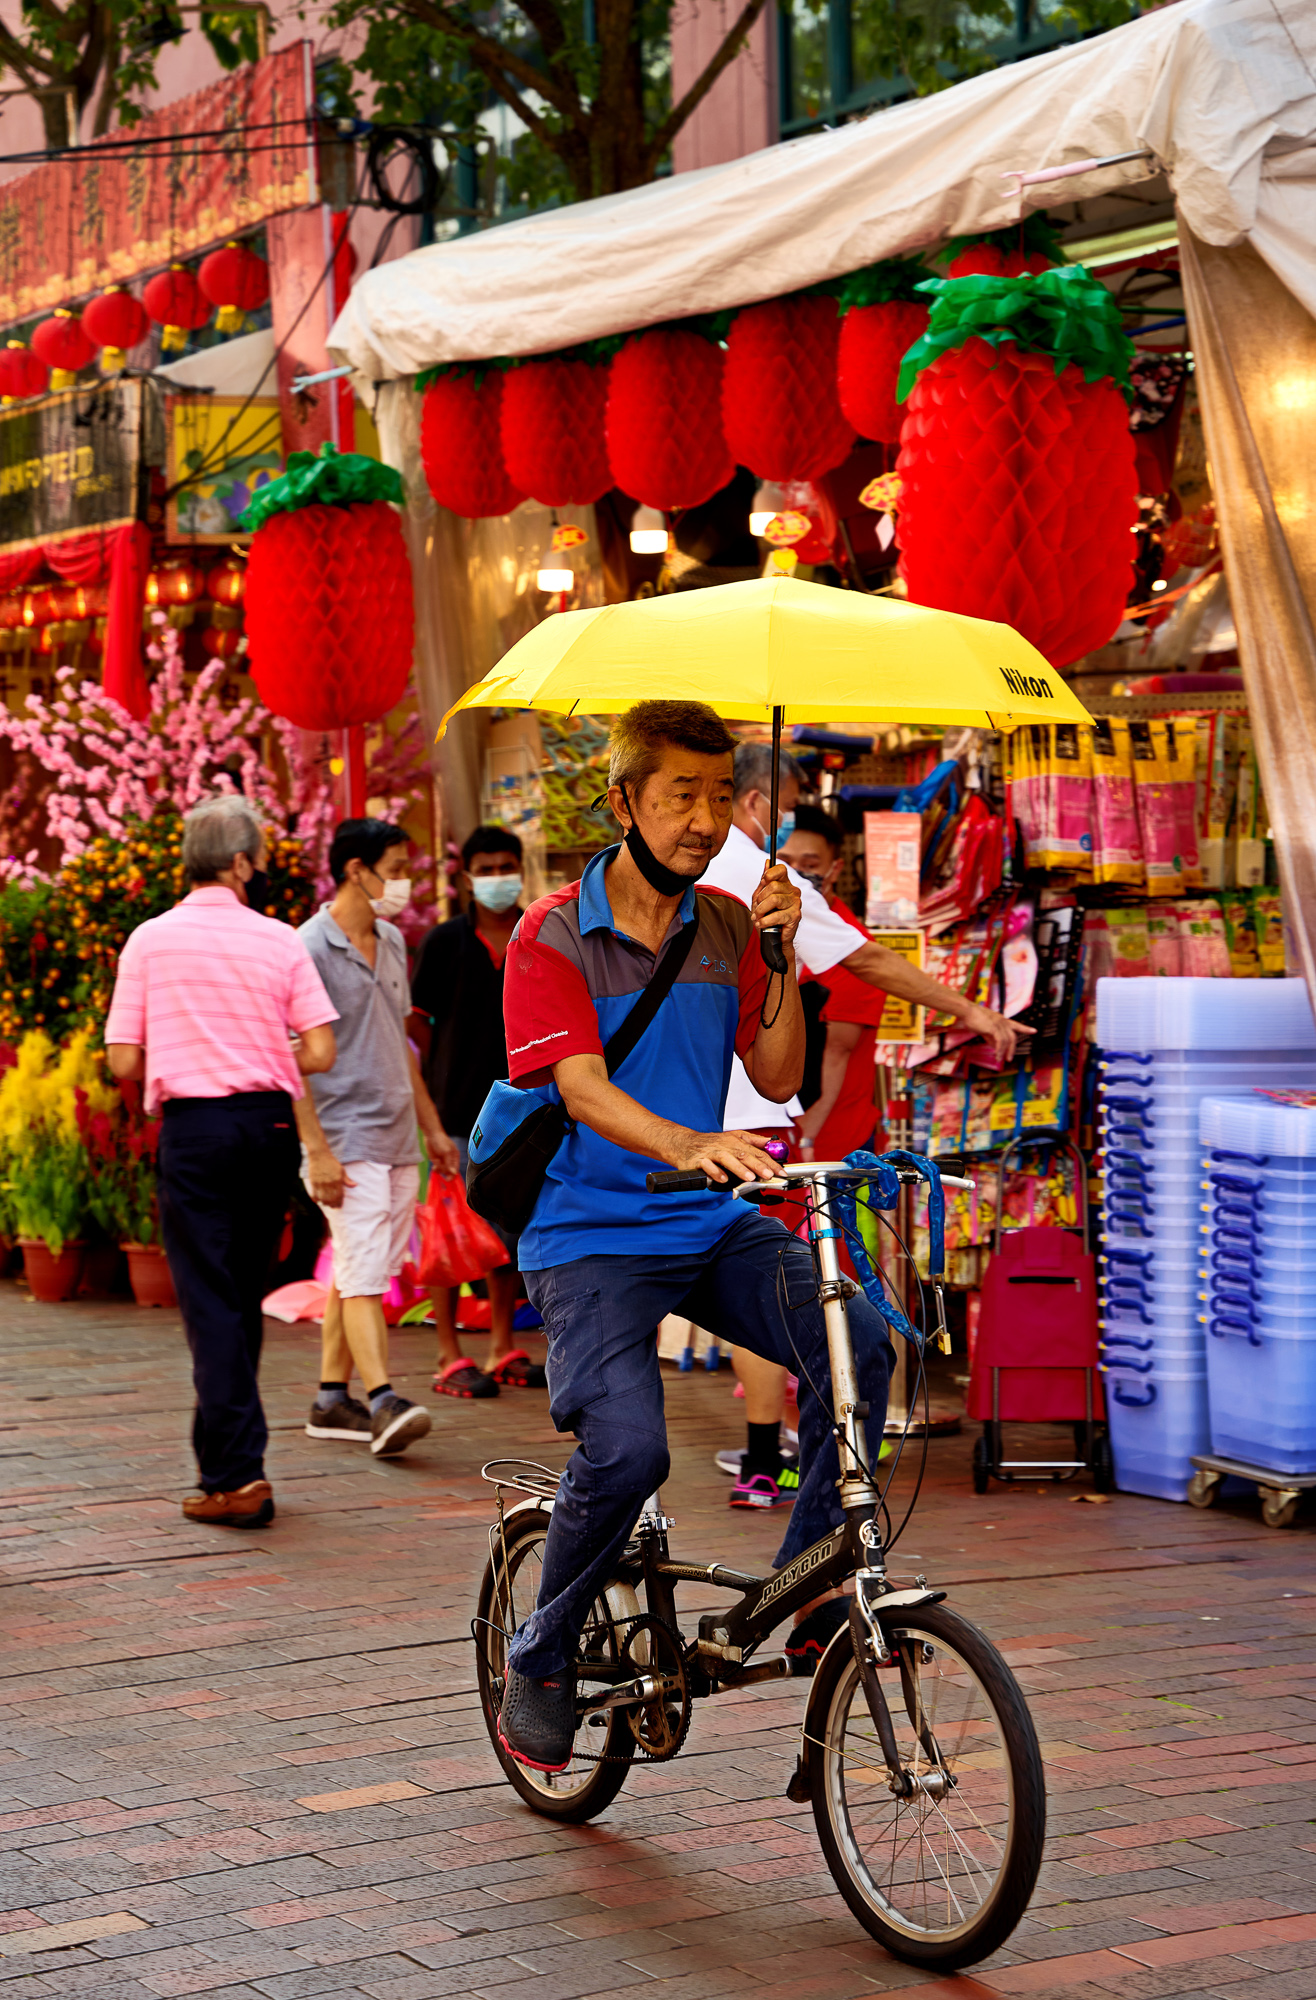 A cyclist with a colorful umbrella, Waterloo Street, Bugis, Singapore